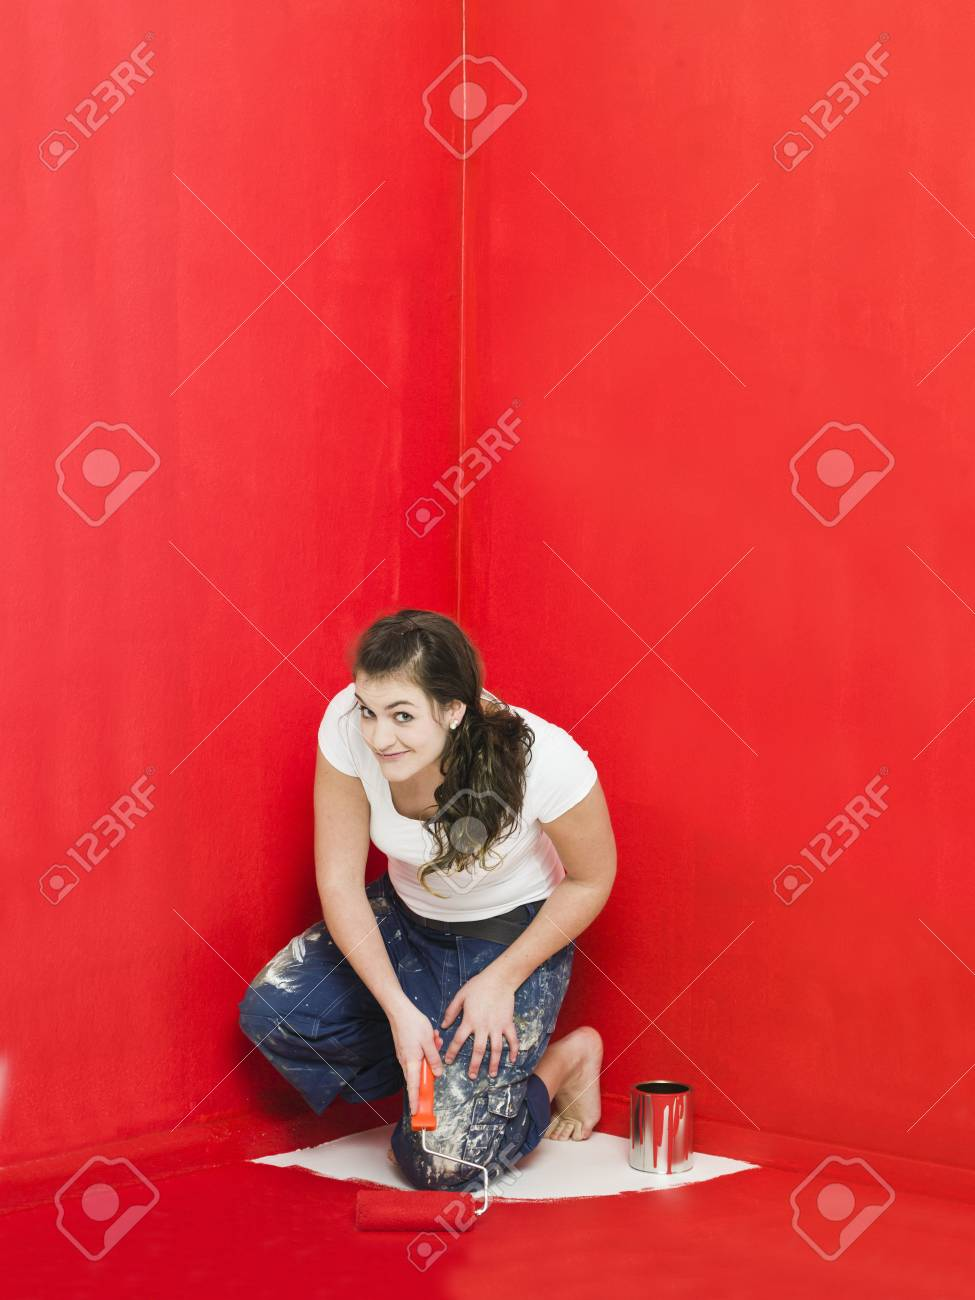 Girl has painted herself in the corner Stock Photo - 8930491